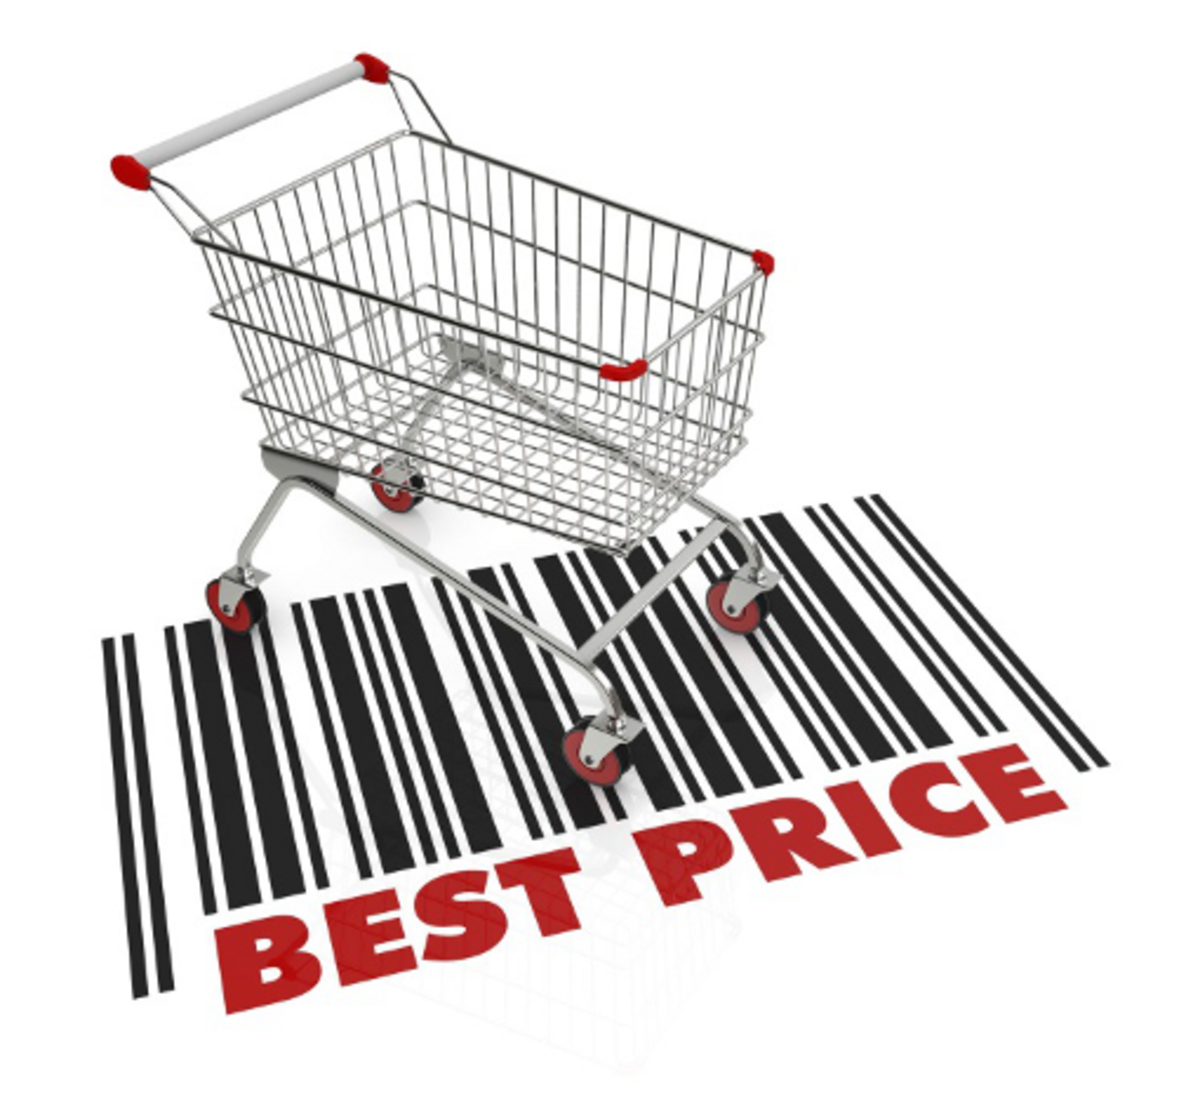 Facts About Pricing That Will Blow Your Mind